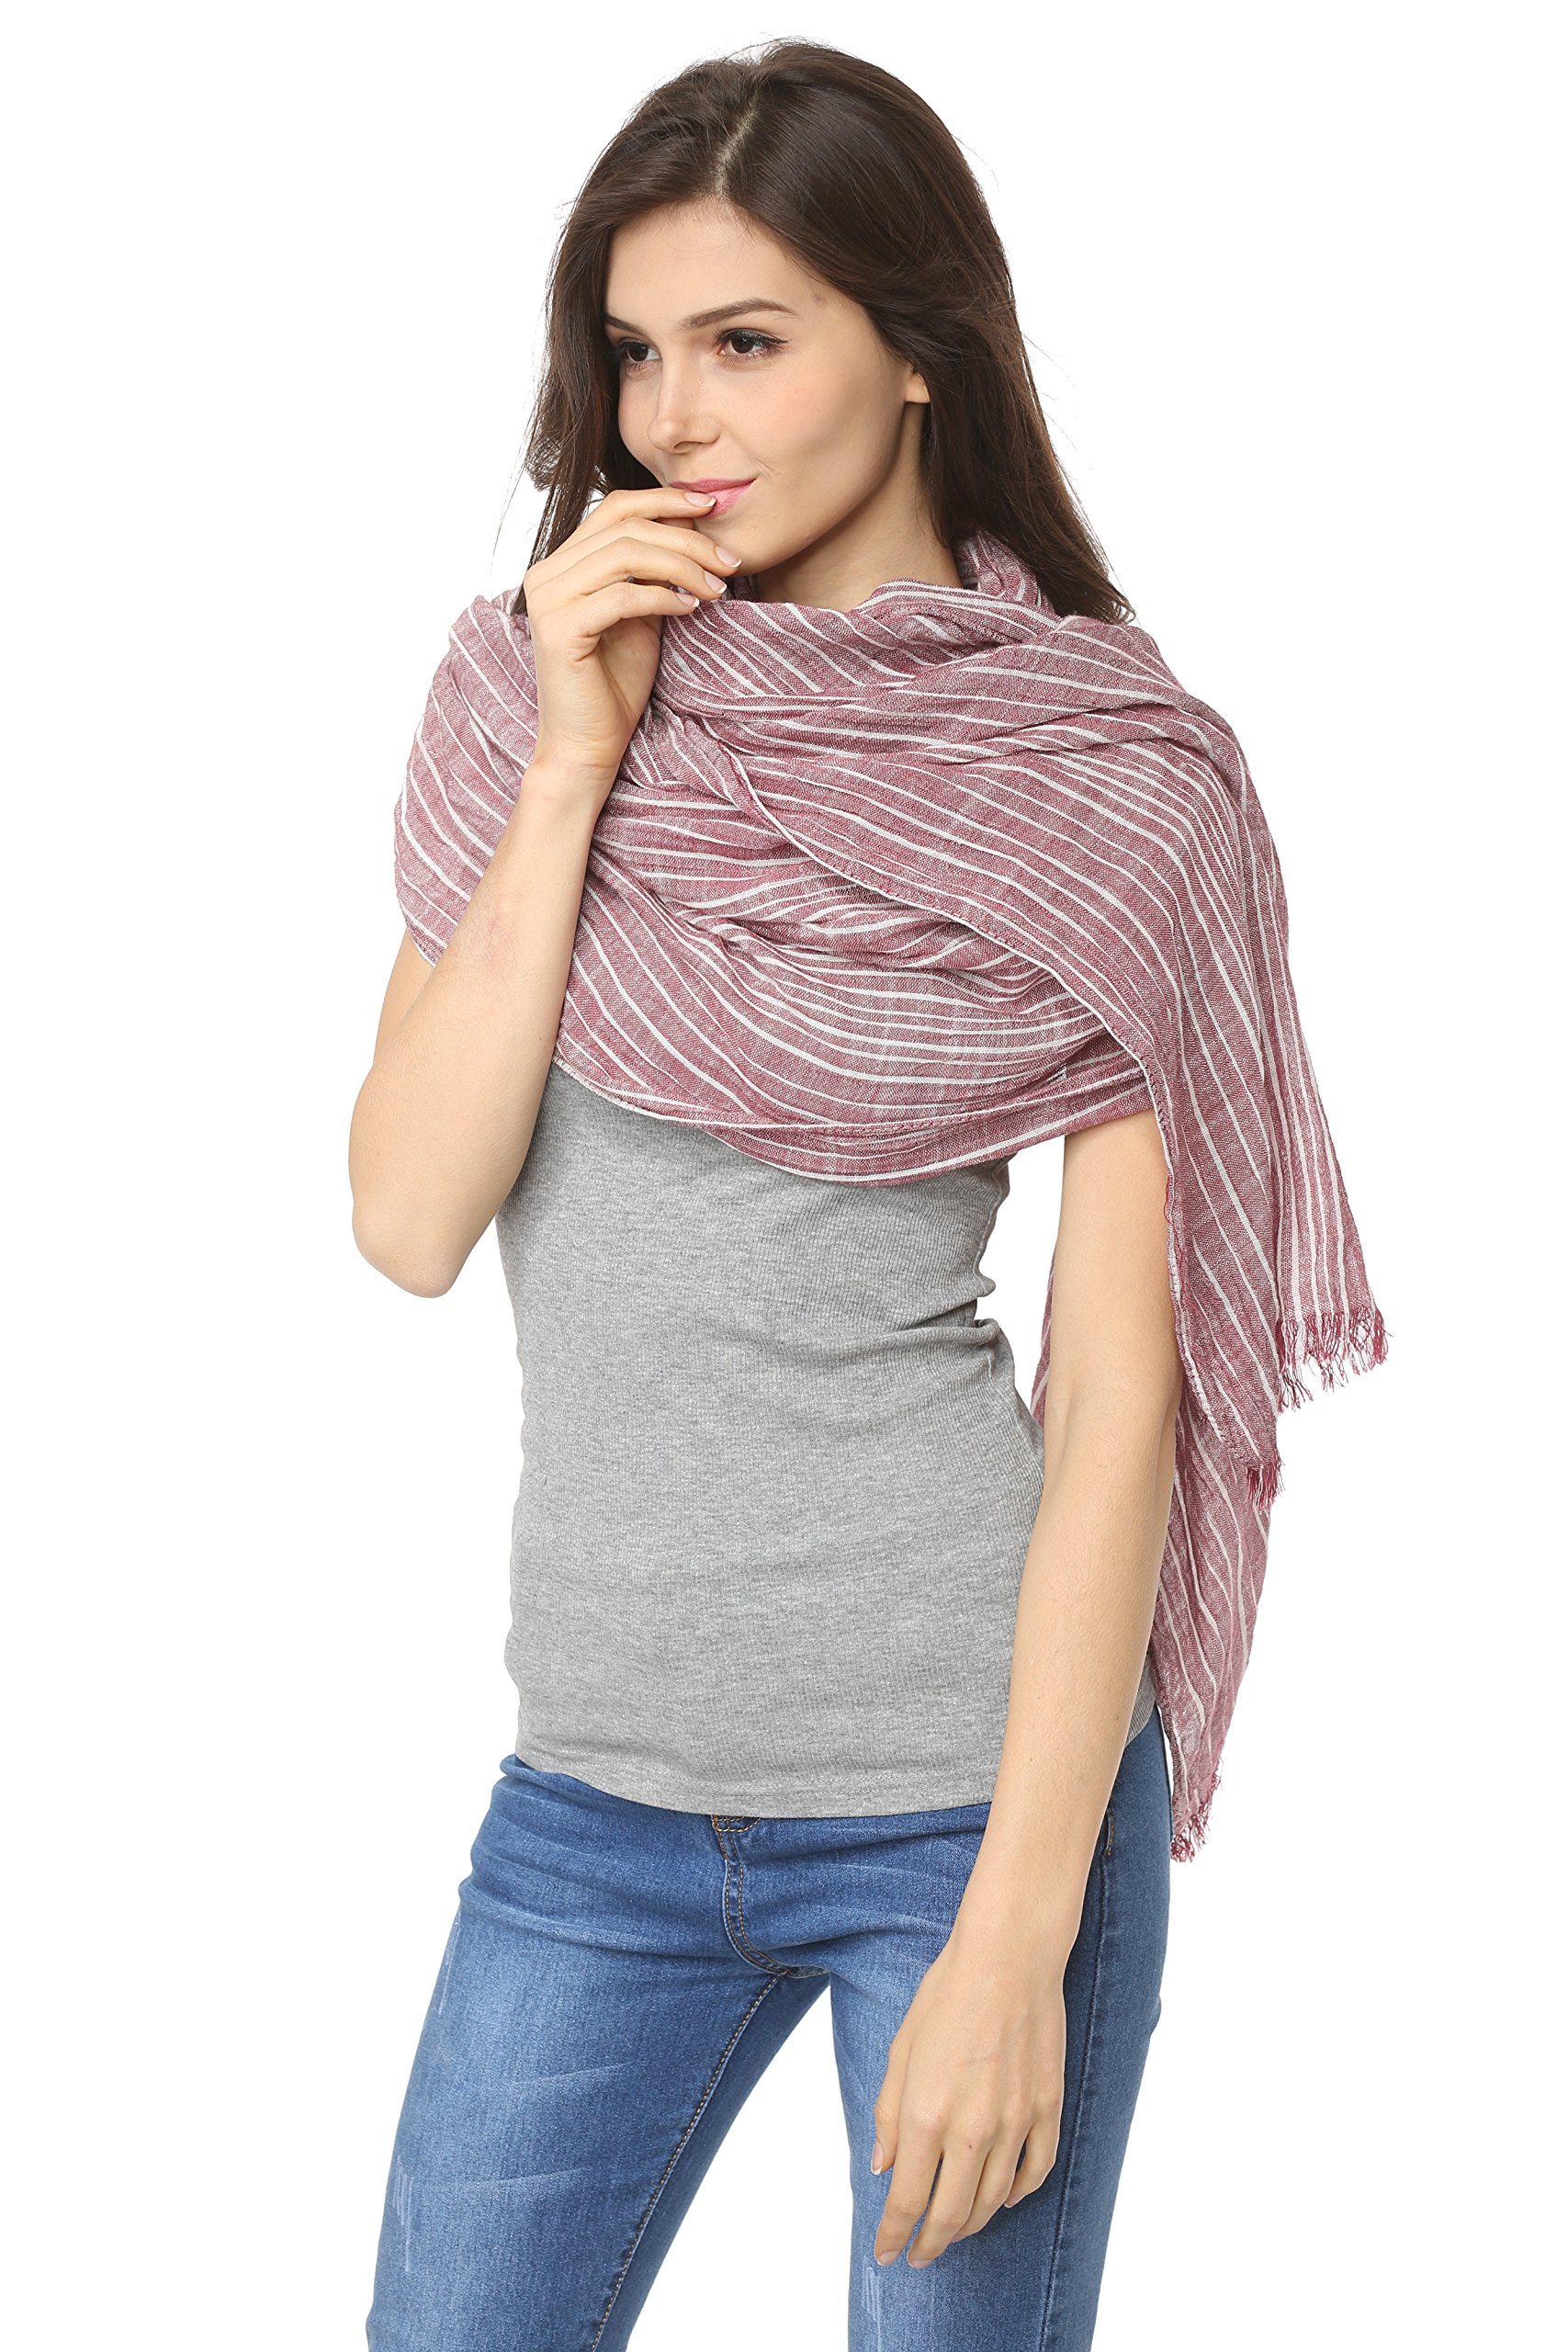 WS Natural Lightweight Scarves: Fashion Shawl Wrap Scarf For Men And Women. Cotton Blend Super Soft Striped(Wine red)